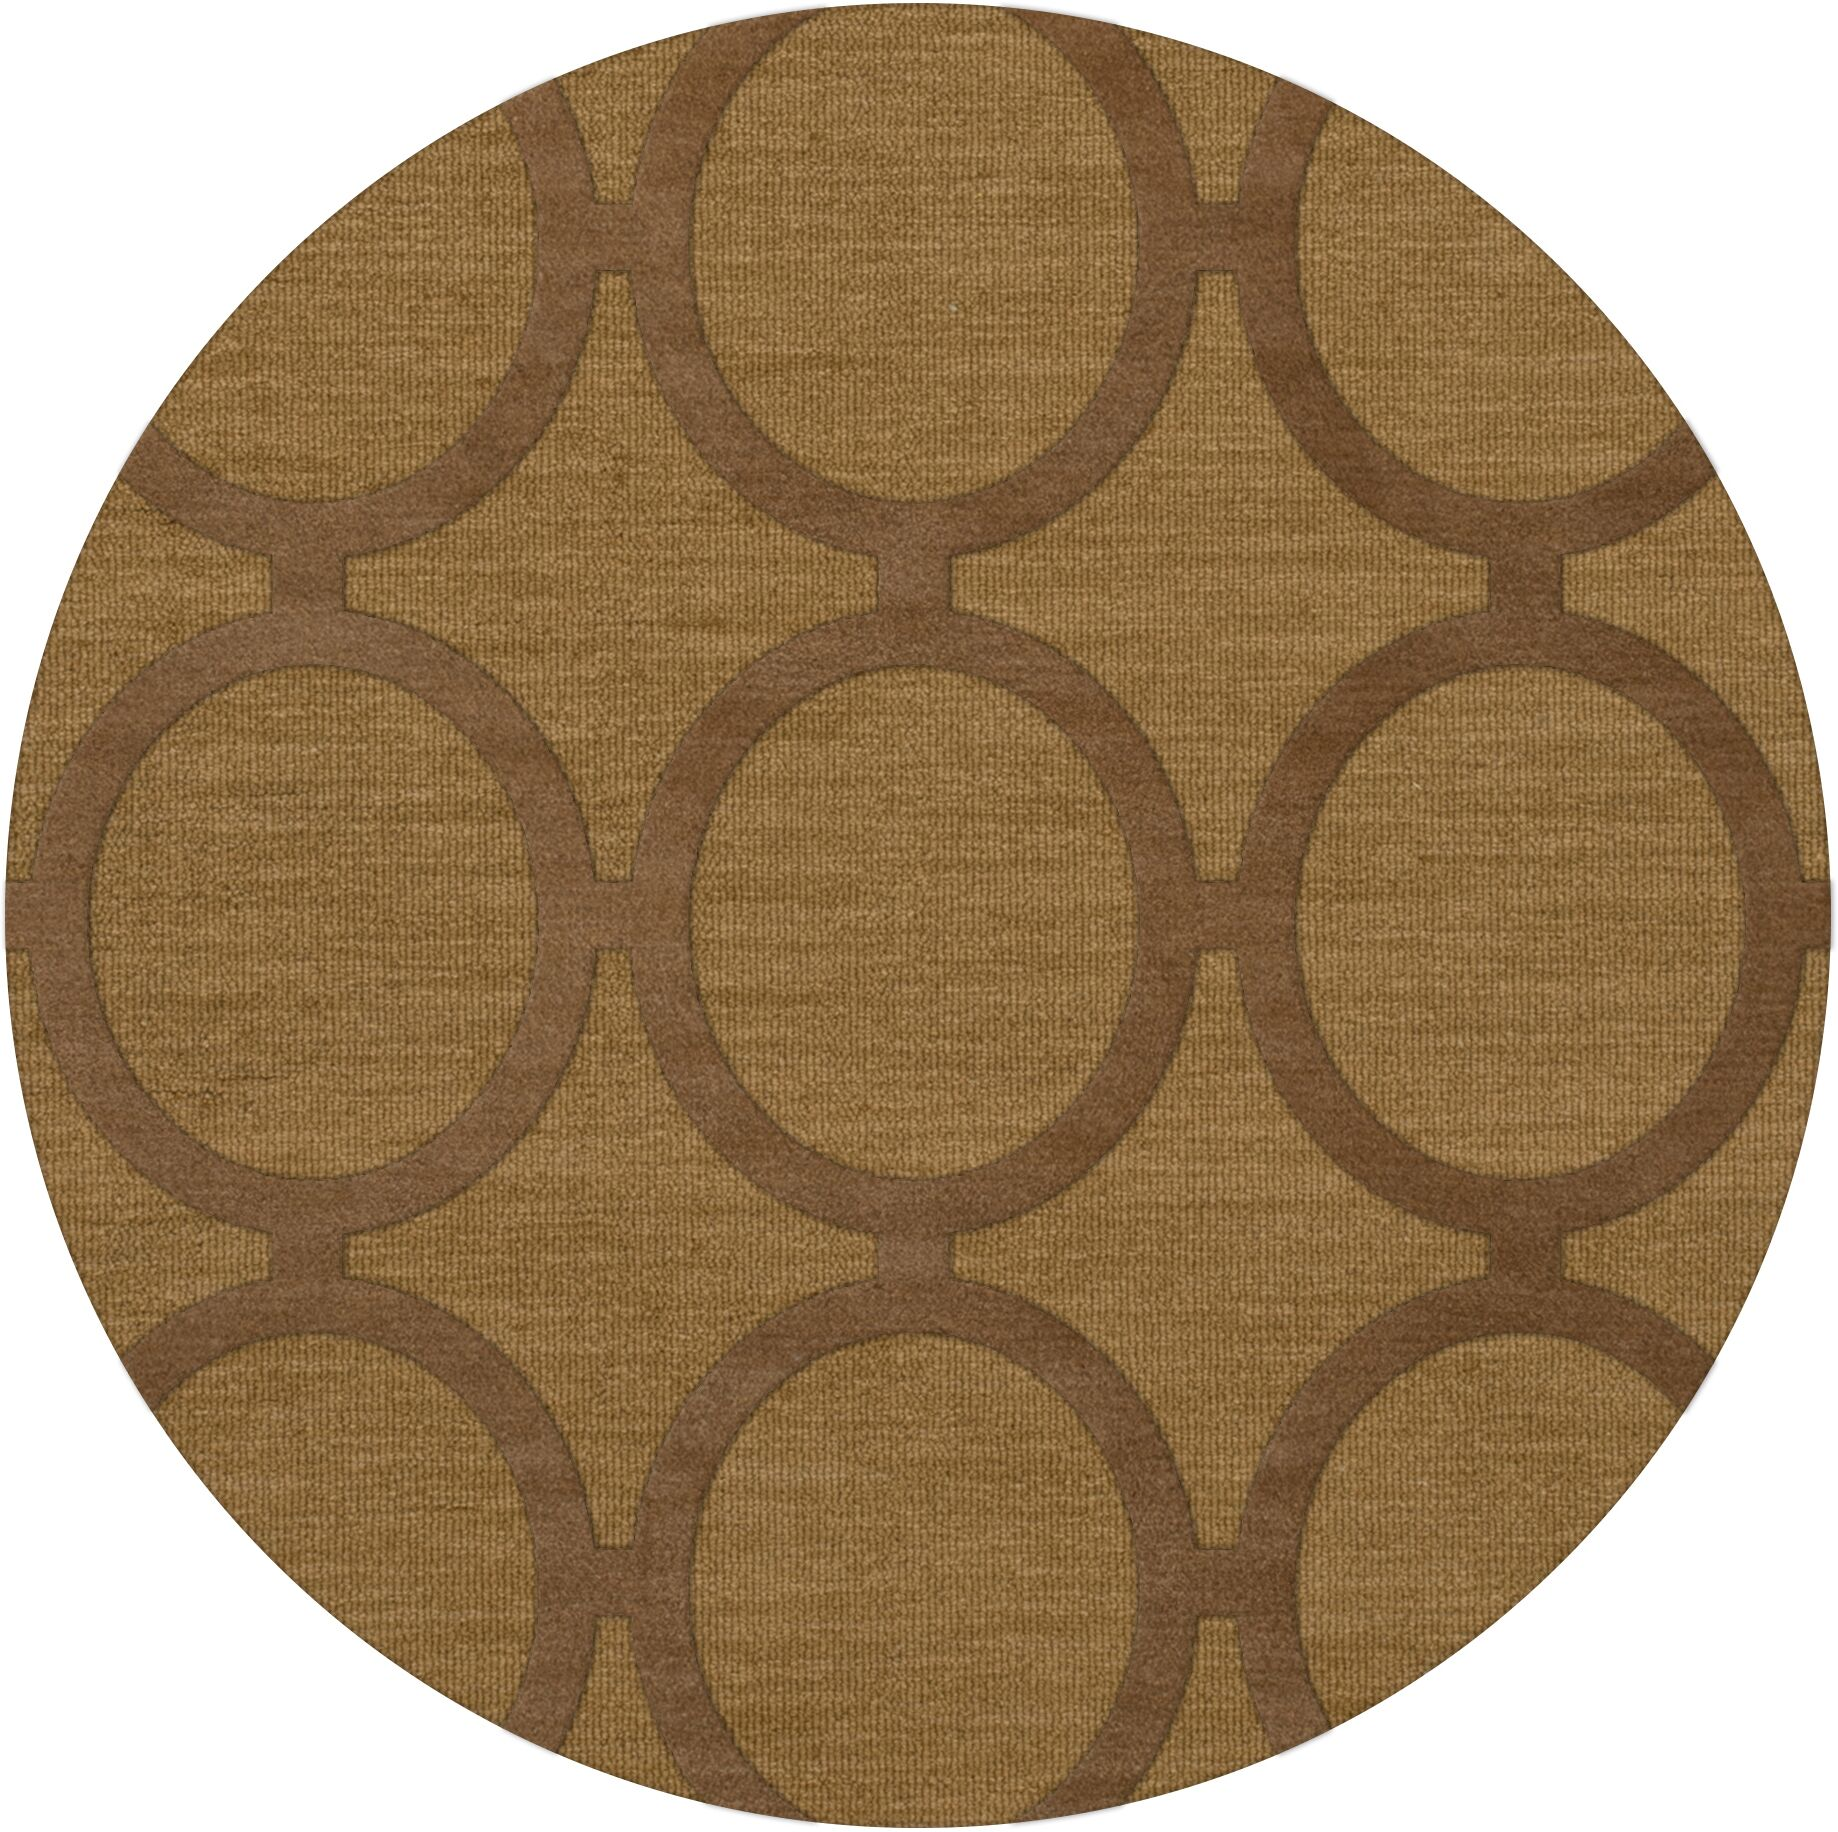 Dover Tufted Wool Gold Dust Area Rug Rug Size: Round 6'